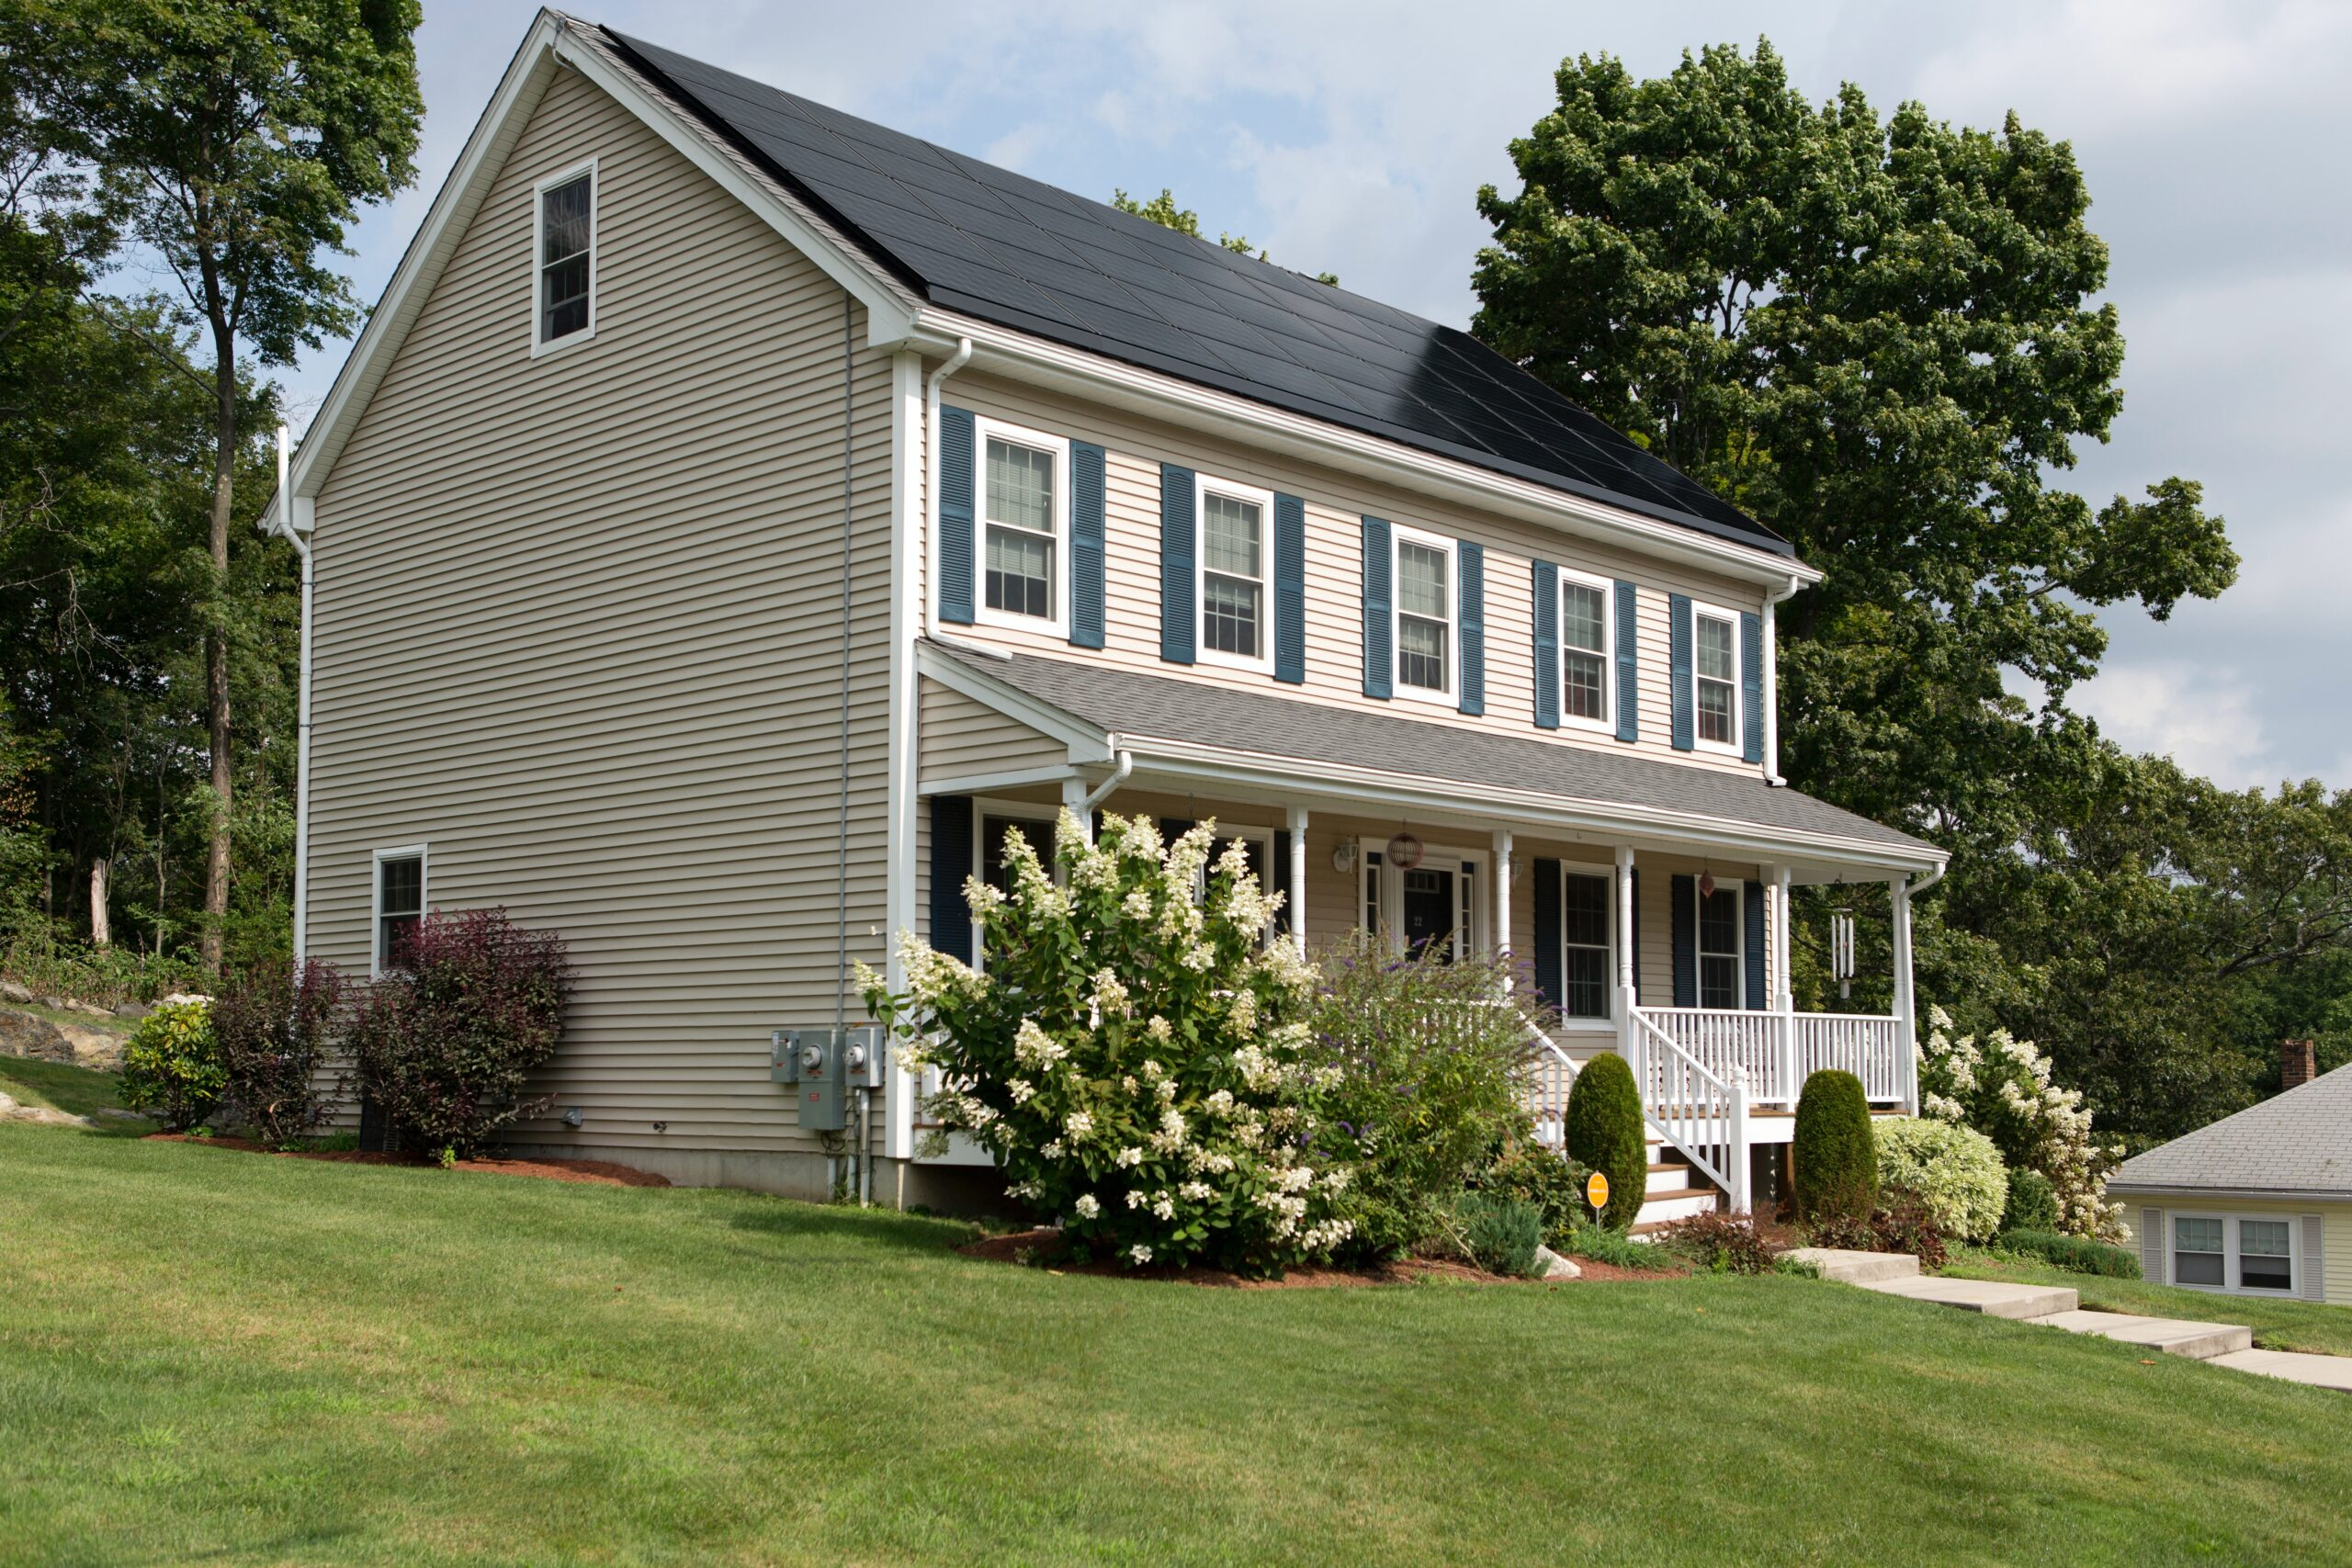 4 Siding Trends in 2021 to Match your Distinctive Home Exterior